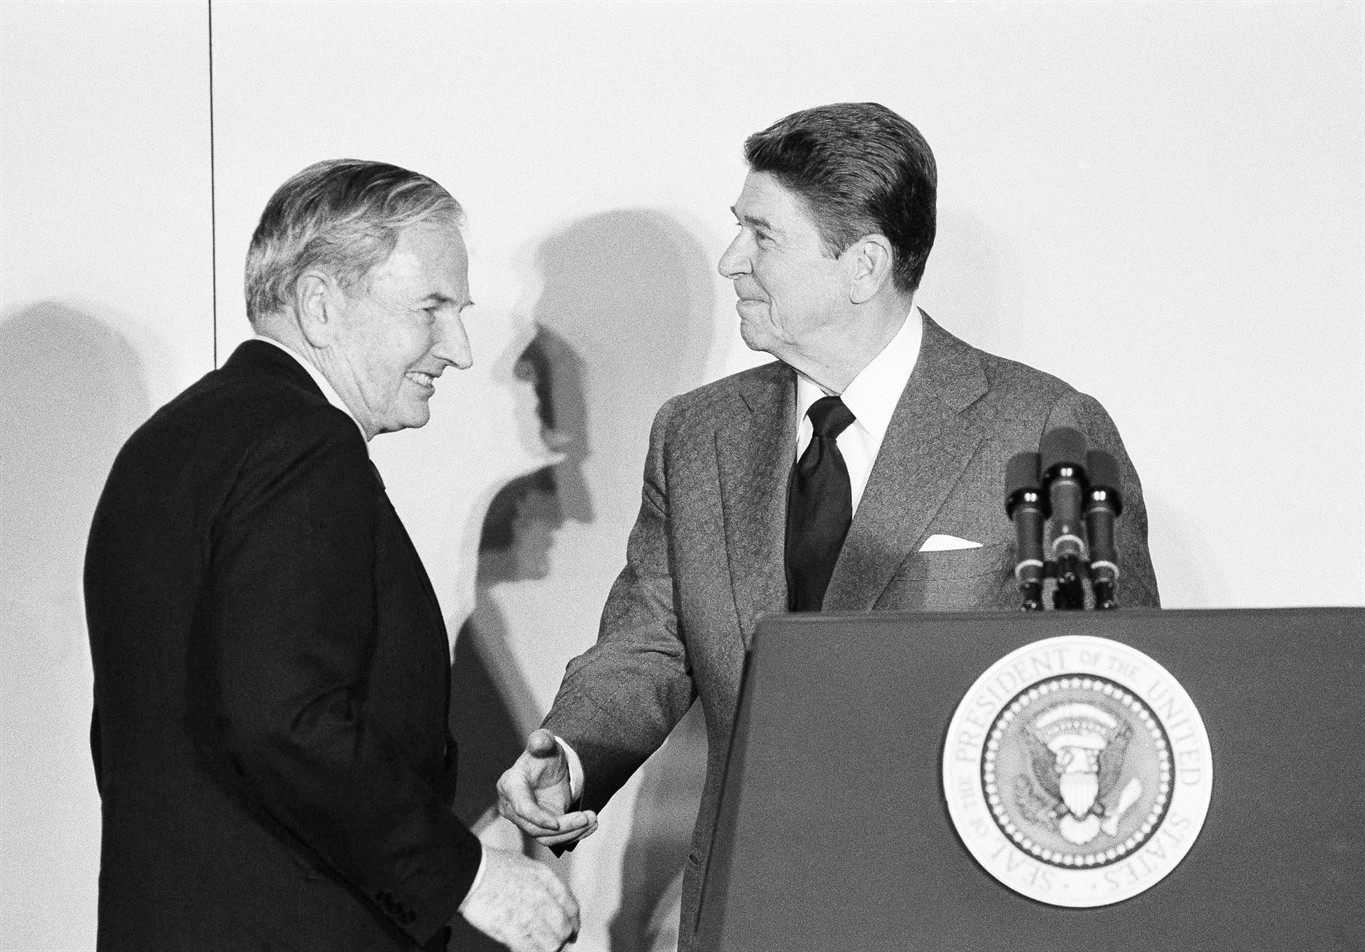 guardian of rockefeller fortune philanthropy dies at news file in this 8 1984 file photo david rockefeller left chairman of the council americas shakes hands president ronald reagan at the state